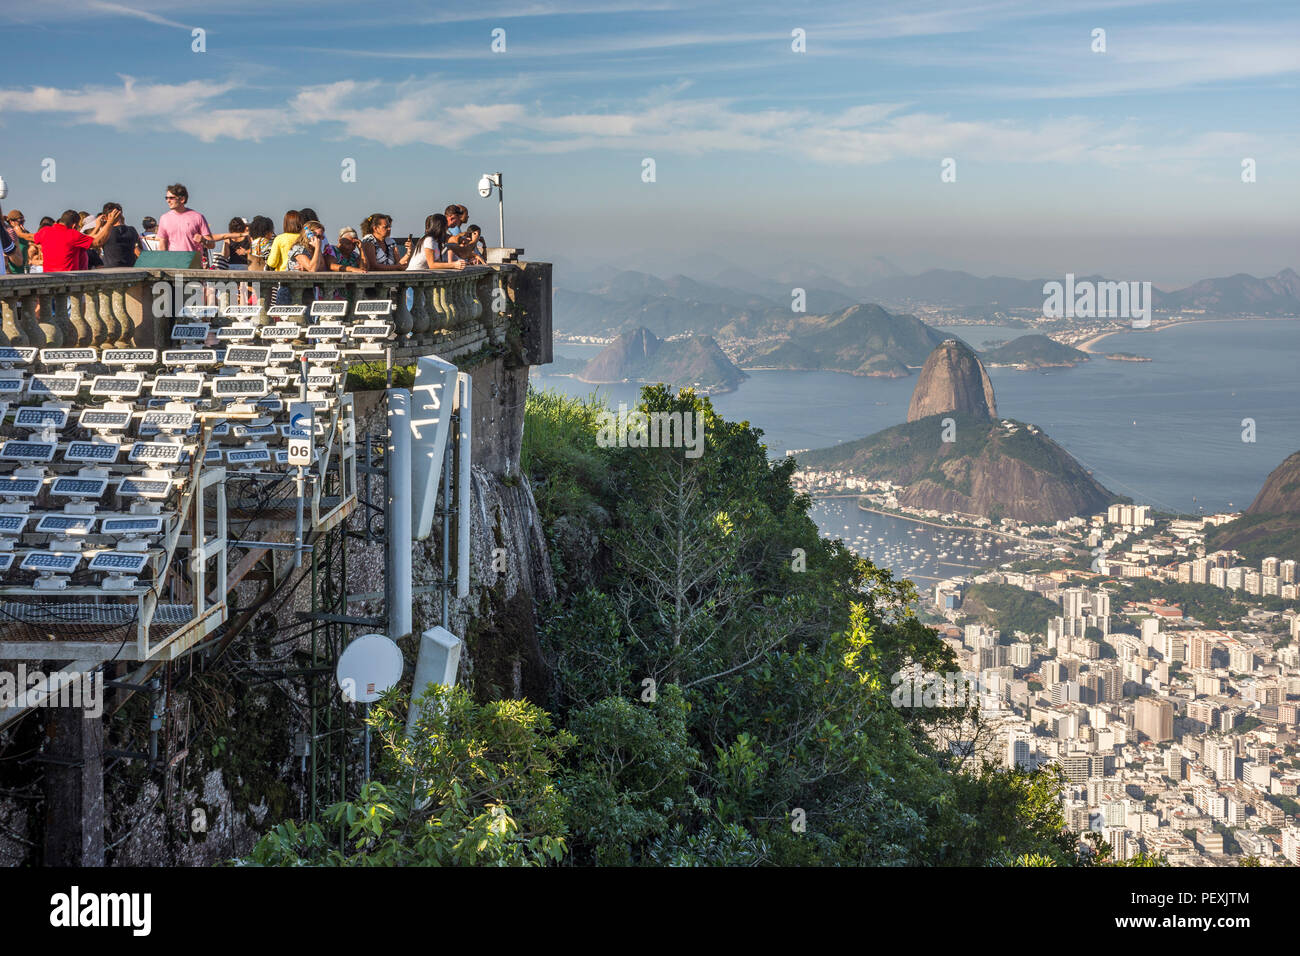 View from Christ the Redeemer on top of Corcovado Mountain in Rio de Janeiro, Brazil - Stock Image